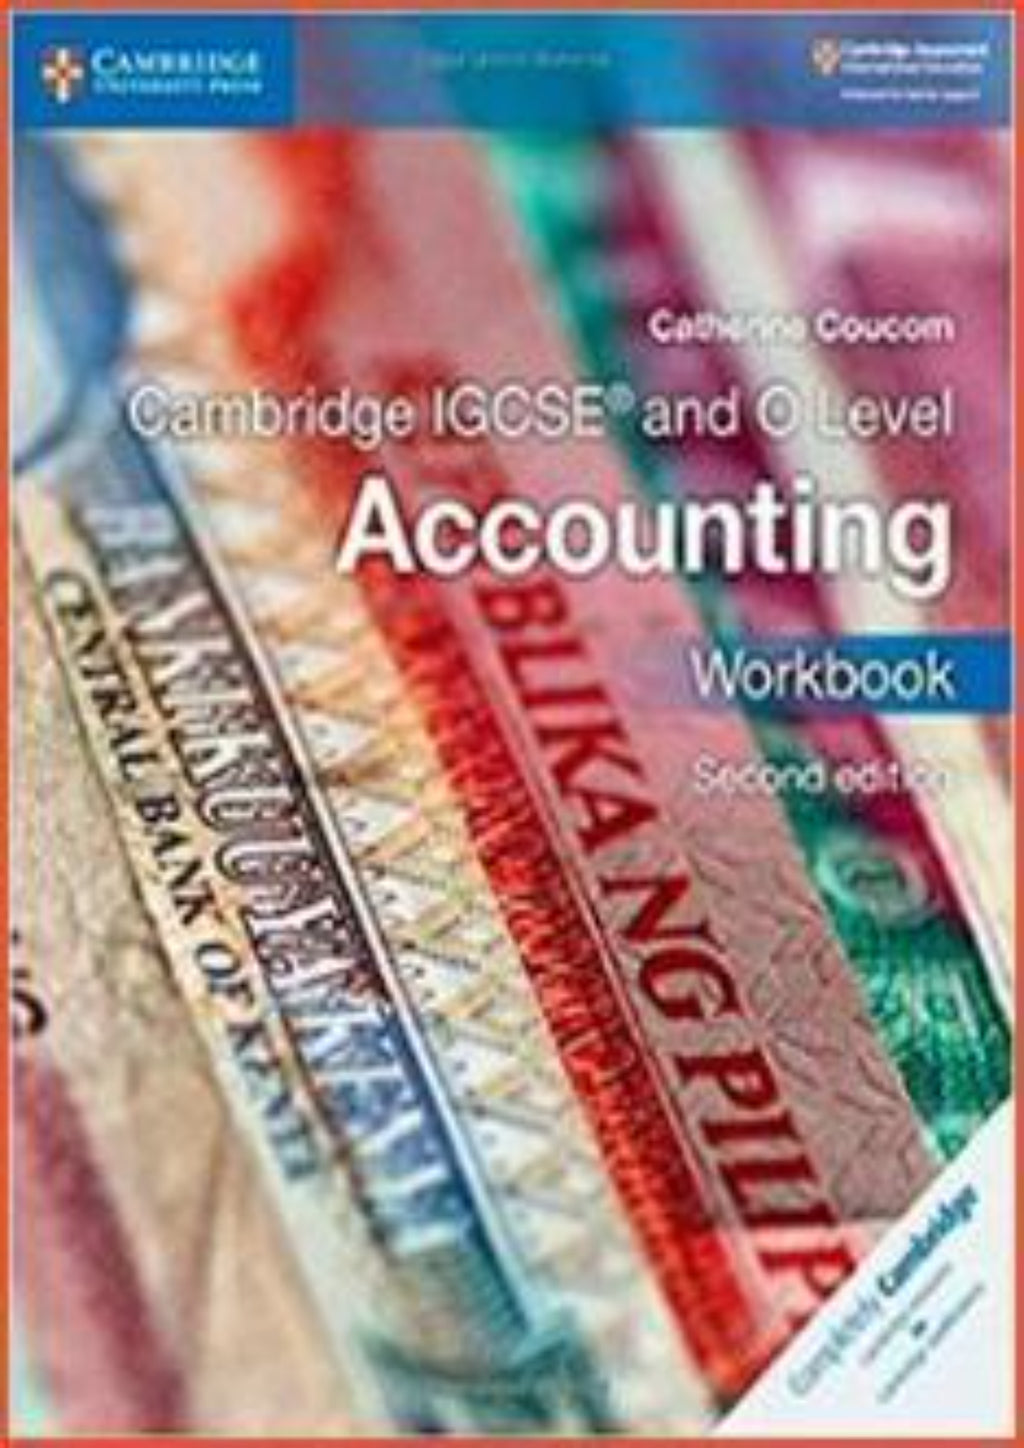 Cambridge IGCSE/O-Level Accounting (0452/7110) Workbook (2nd Edition)